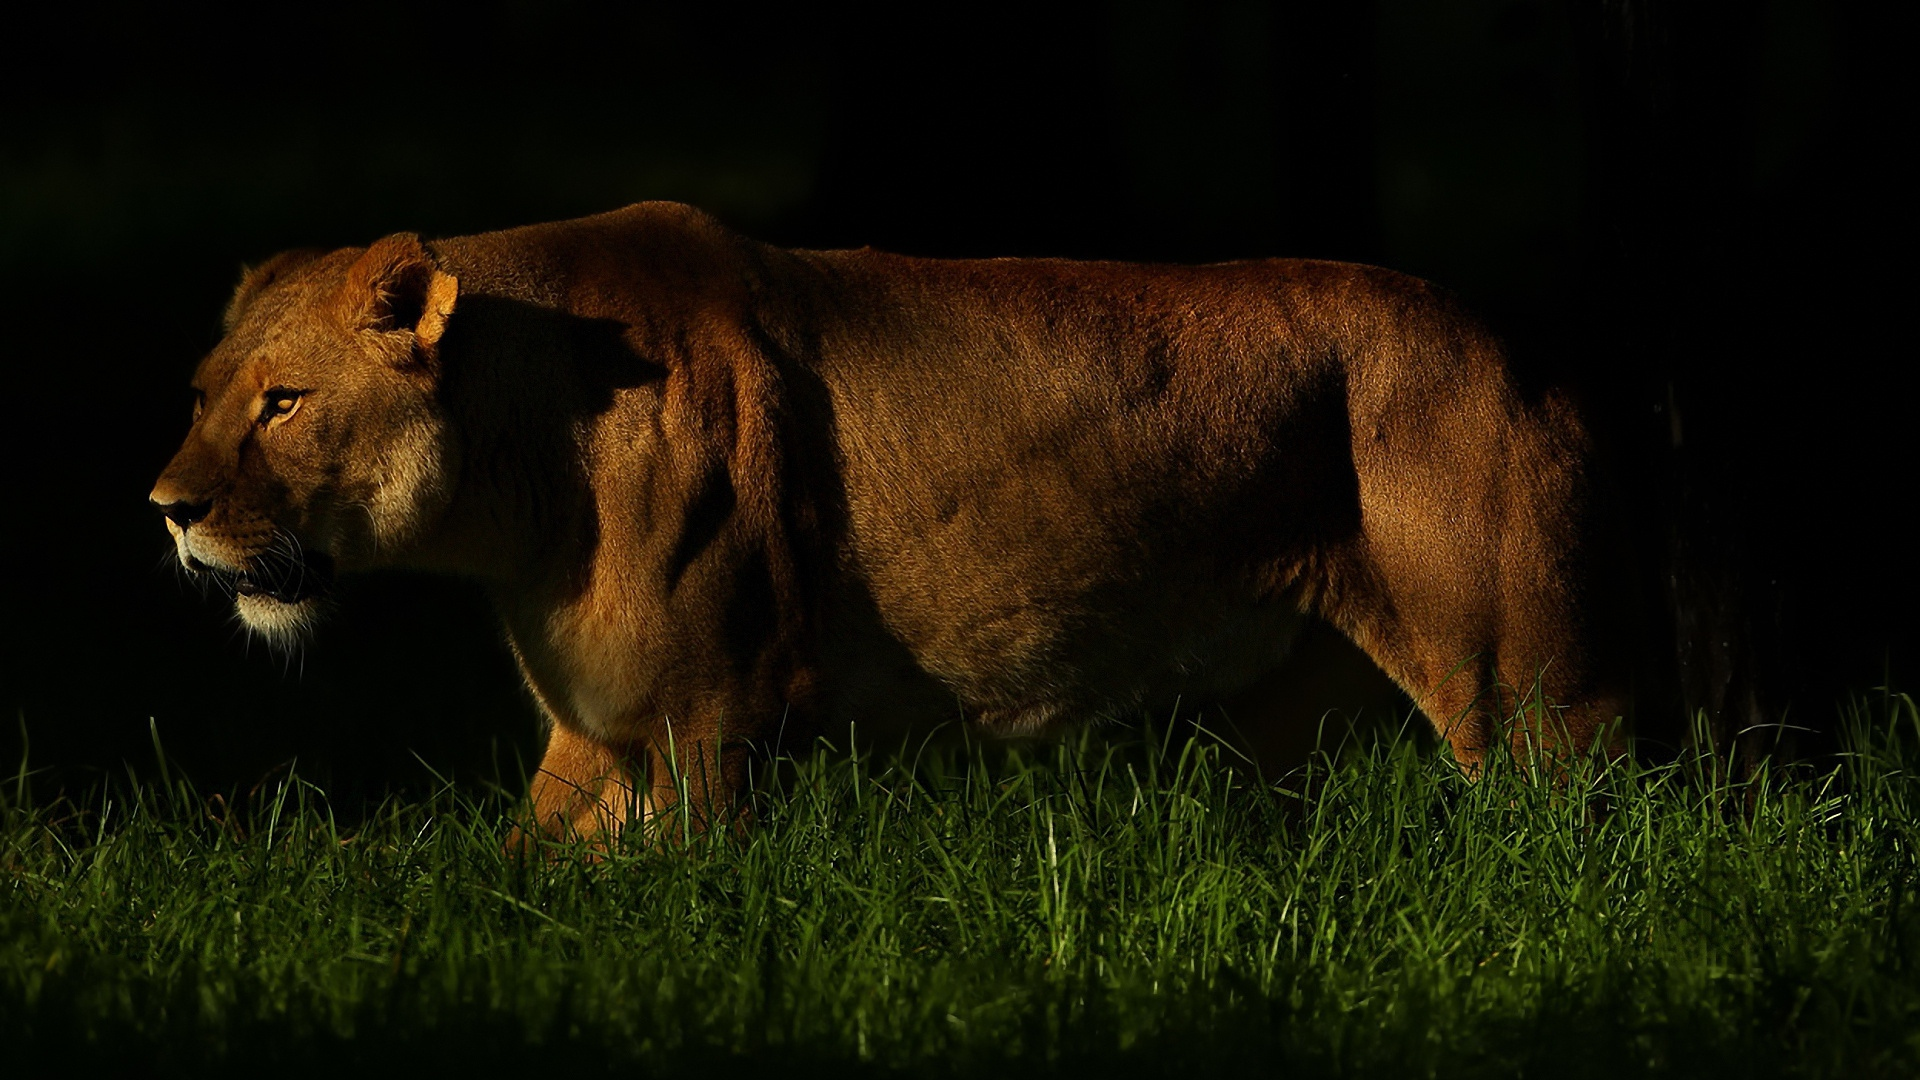 Simple Wallpaper Night Lion - lion_shadow_dark_grass_walking_hunting_predator_59653_1920x1080  You Should Have-631563.jpg